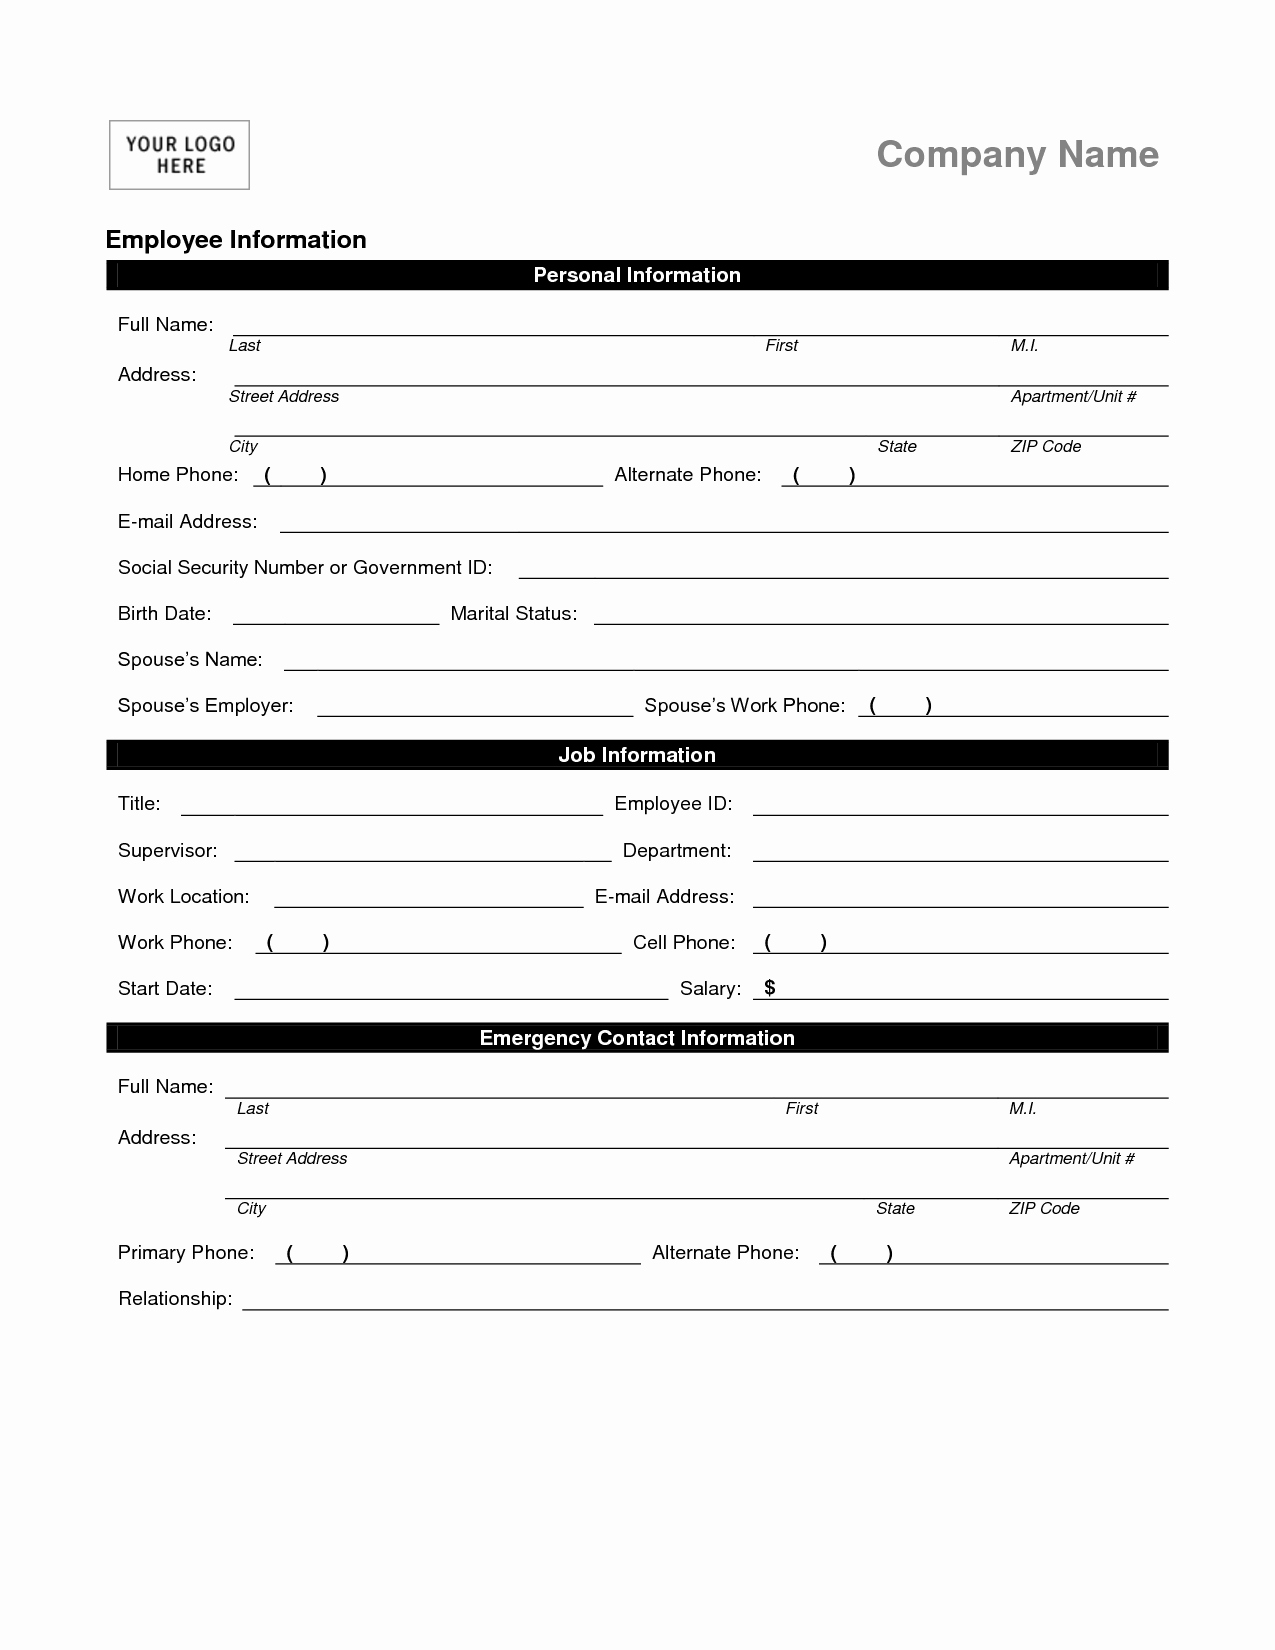 Employment Information form Template Fresh Employee Personal Information form Template